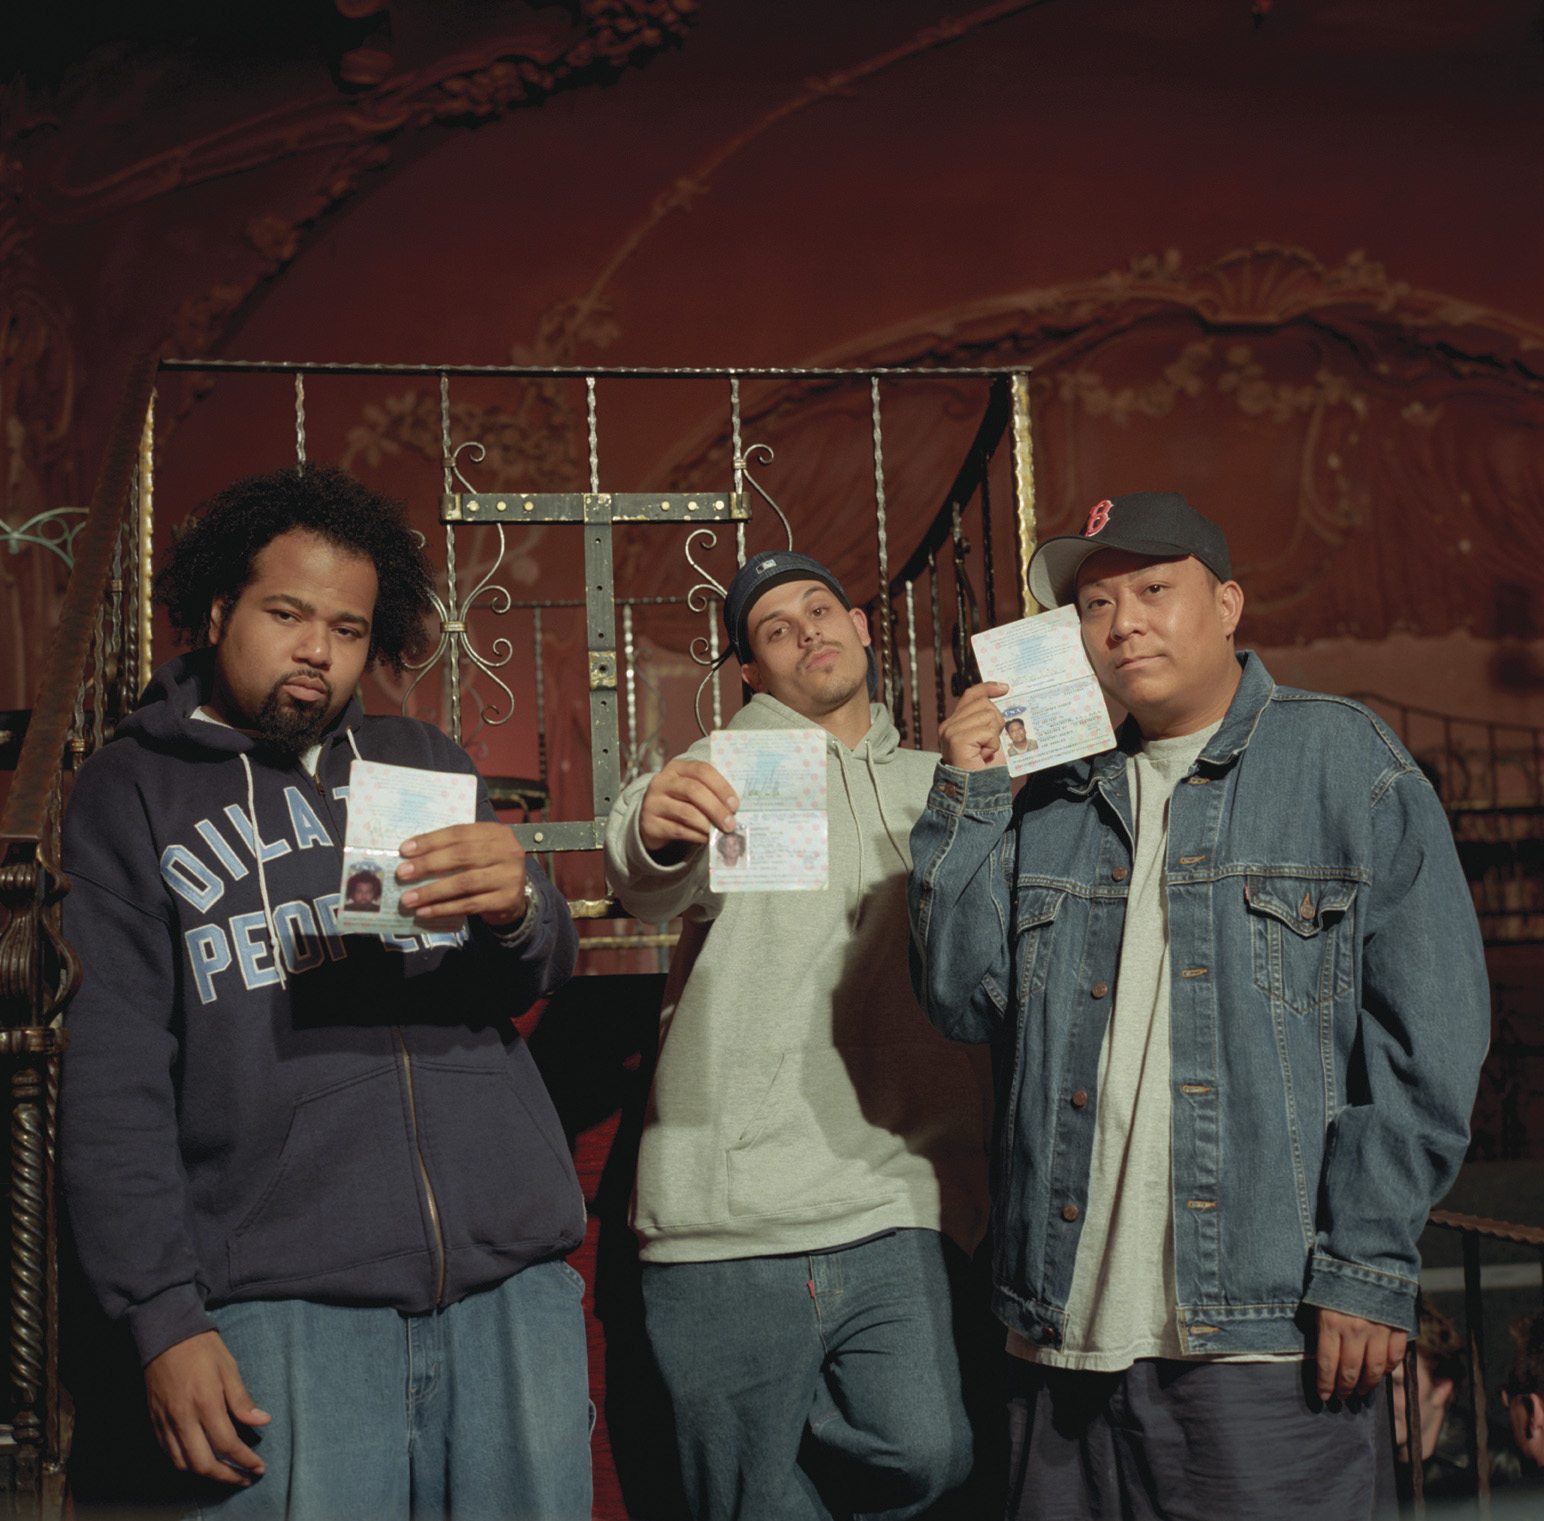 File:Dilated Peoples-mika.jpg - Wikimedia Commons